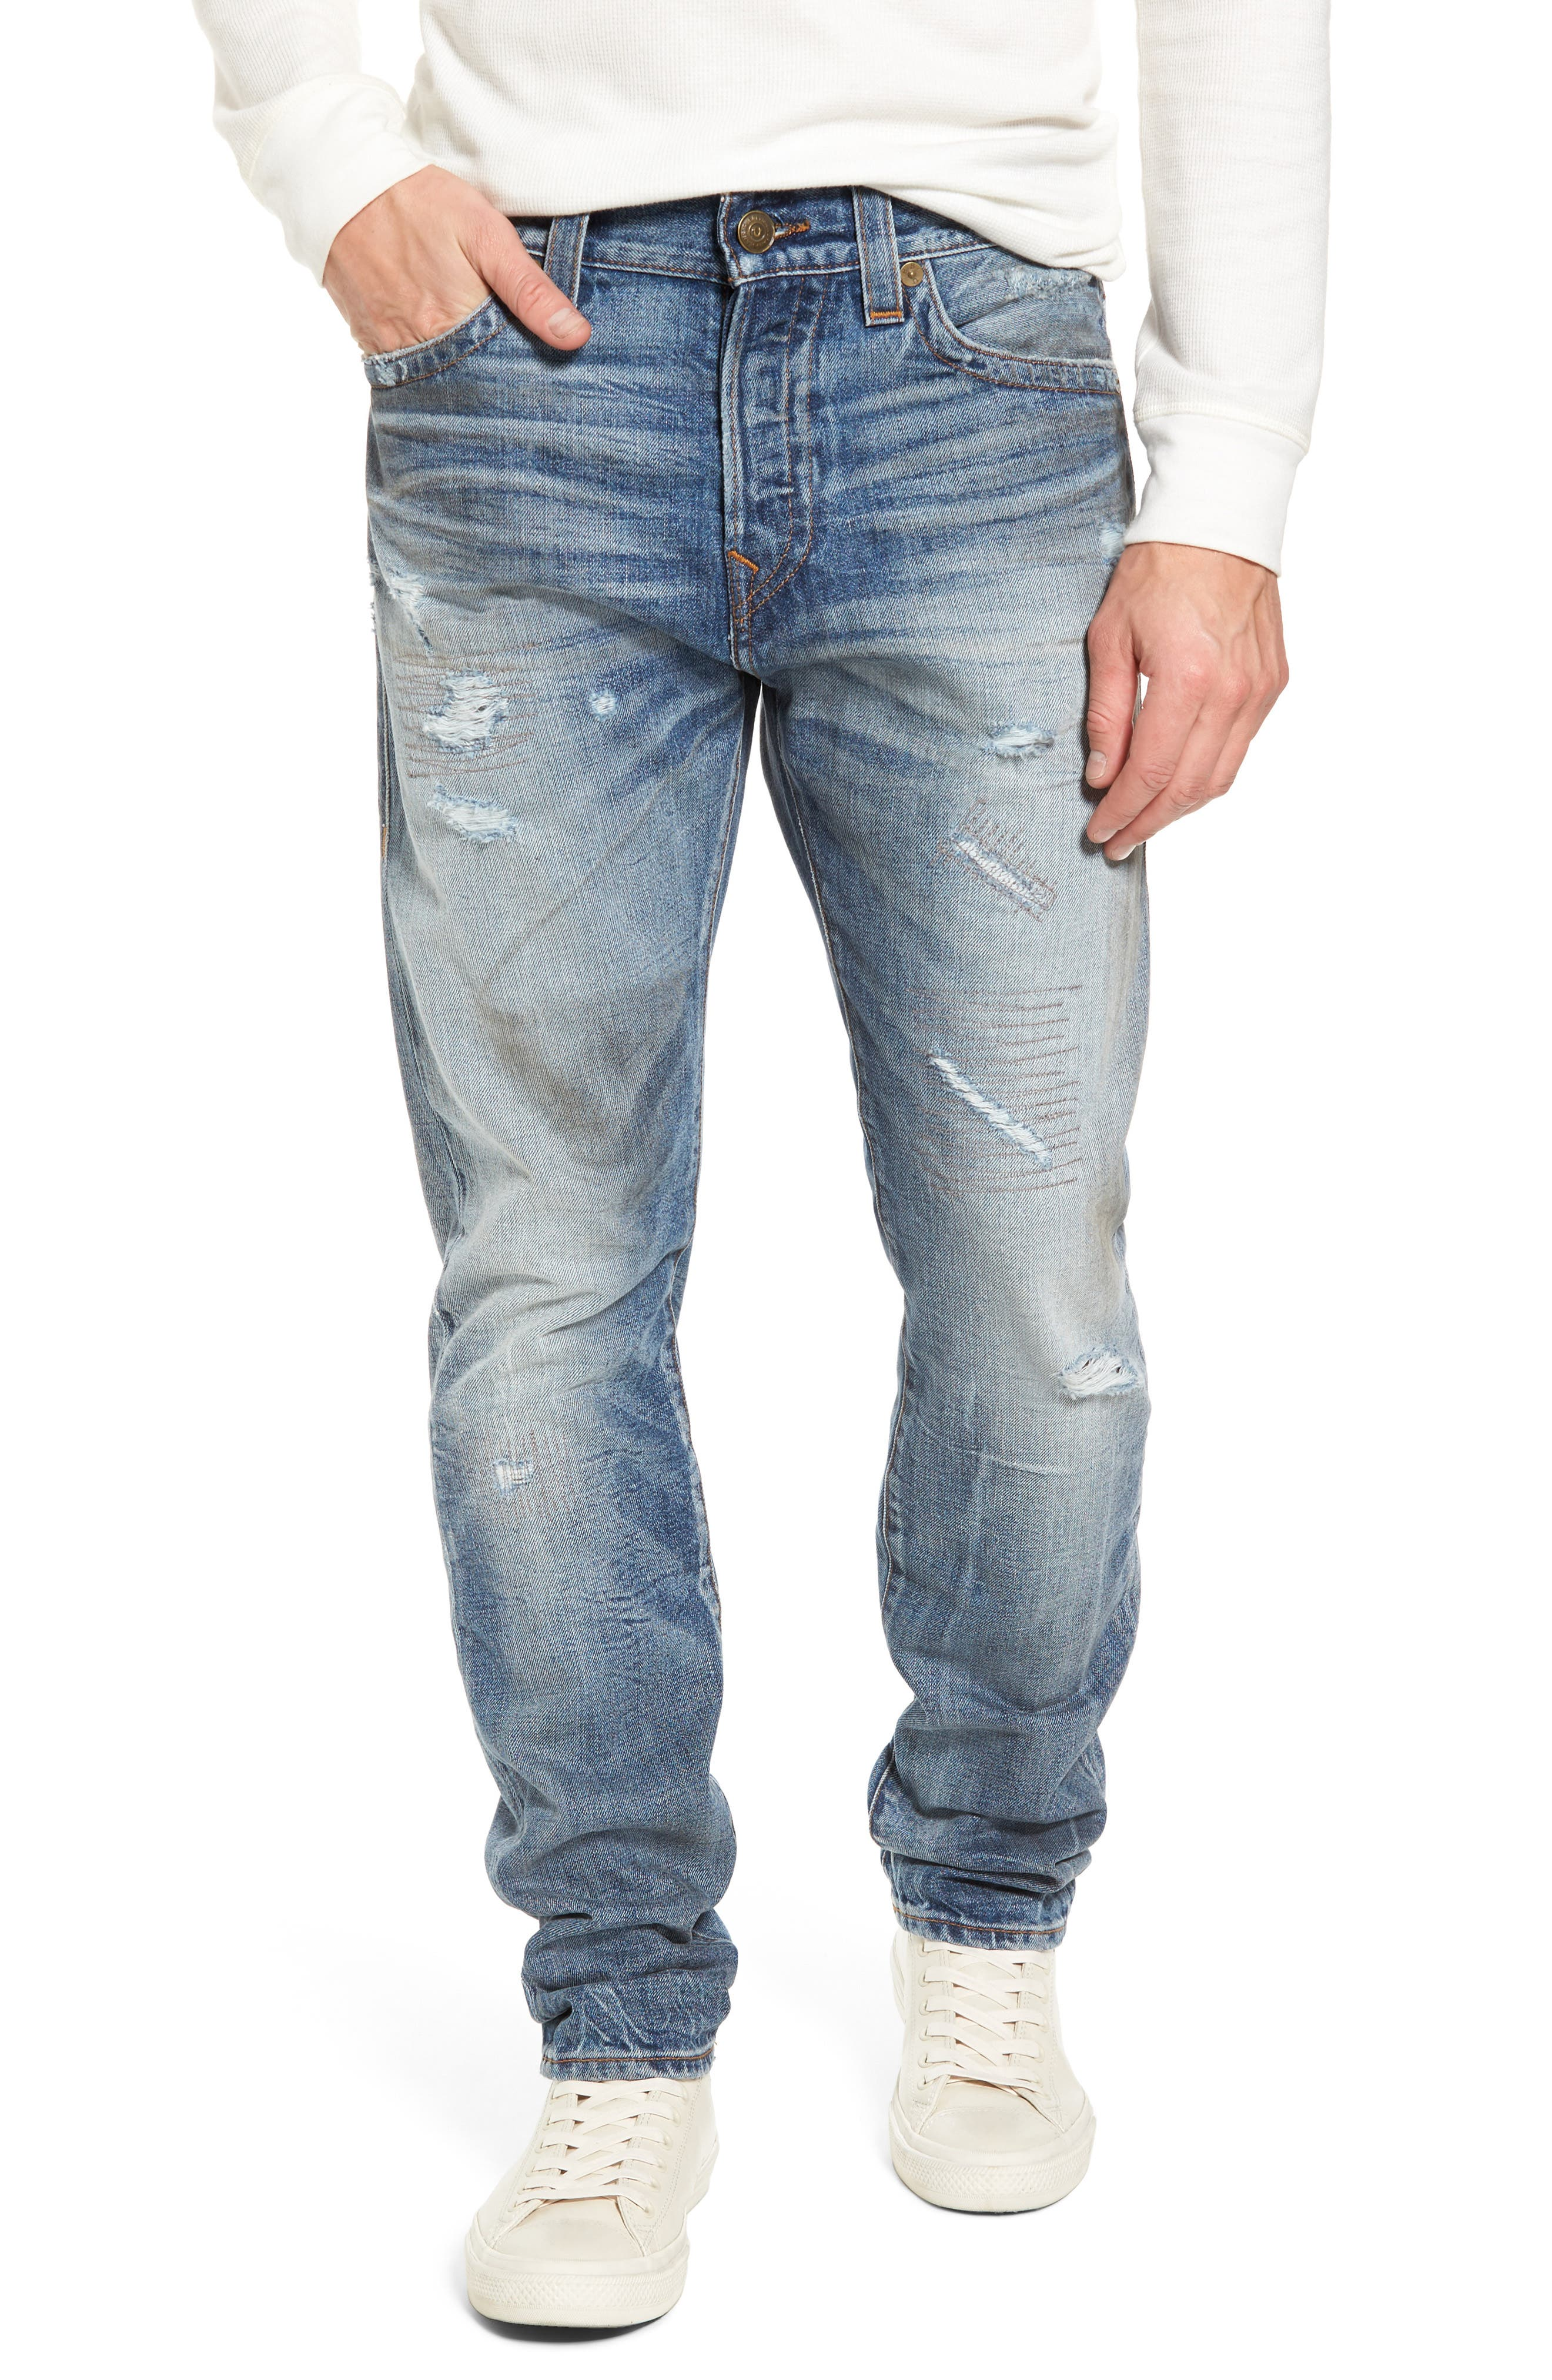 Main Image - True Religion Brand Jeans Logan Slim Straight Fit Jeans (Mended Street Brawl)